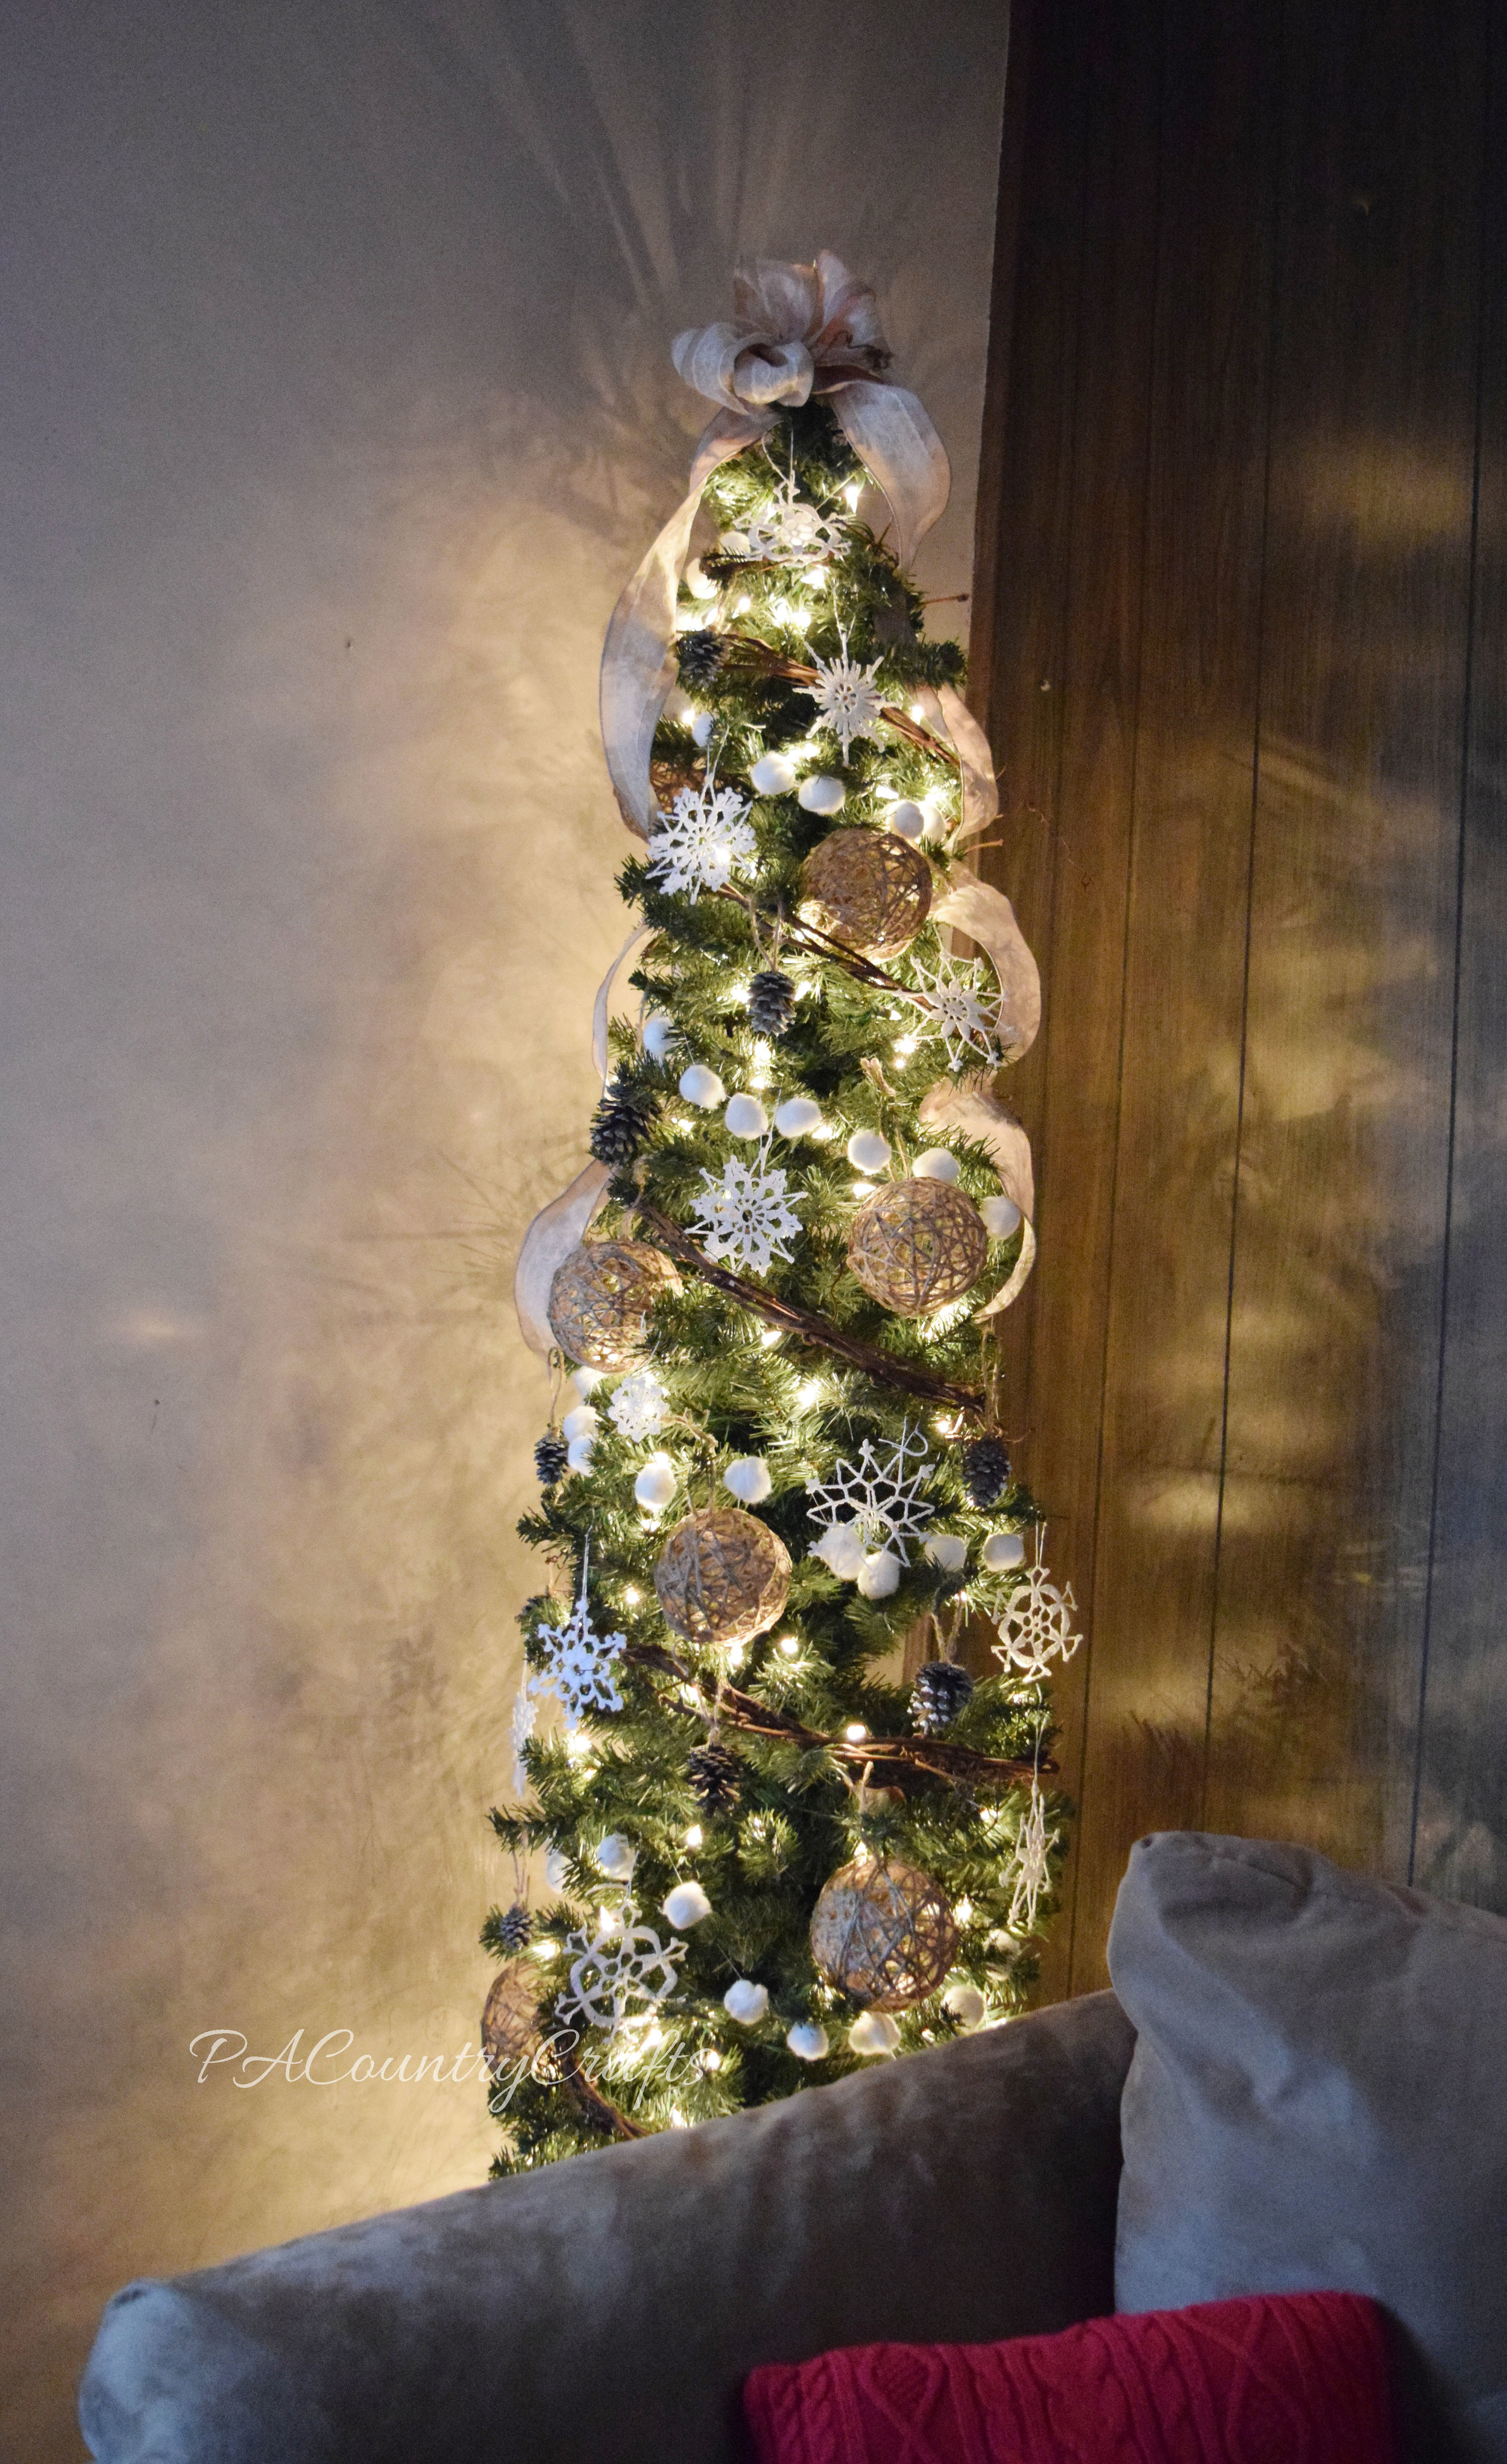 All of the decorations on this rustic, winter tree are homemade!